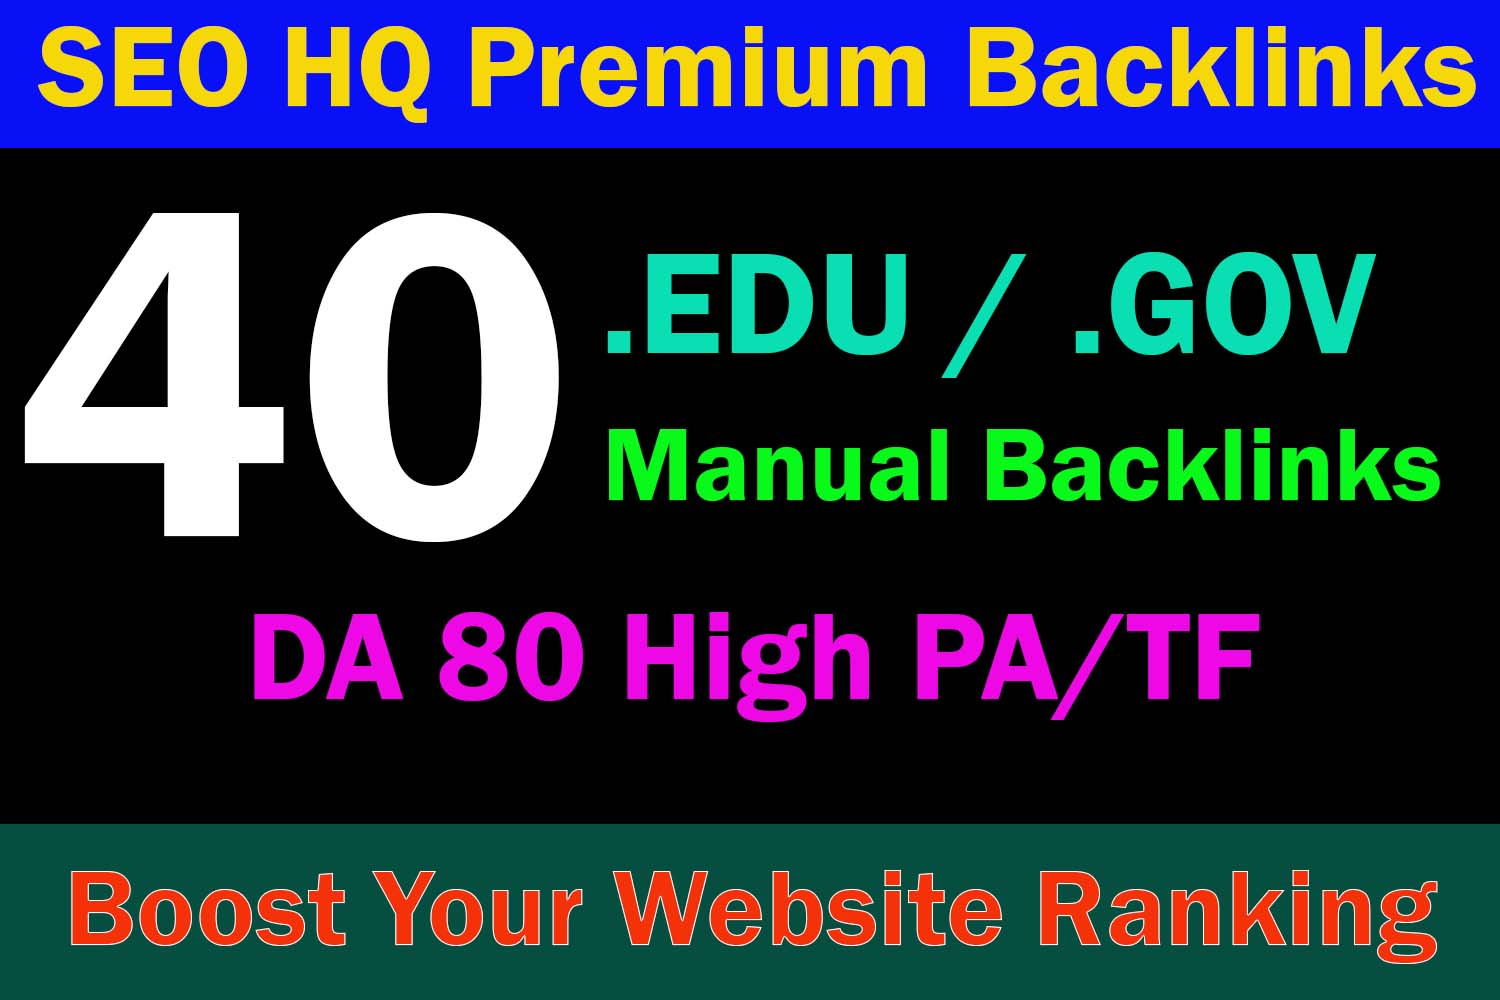 40 EDU/GOV High Authority Dofollow Backlinks To Top DA 80 Premium Sites - Boost website Ranking